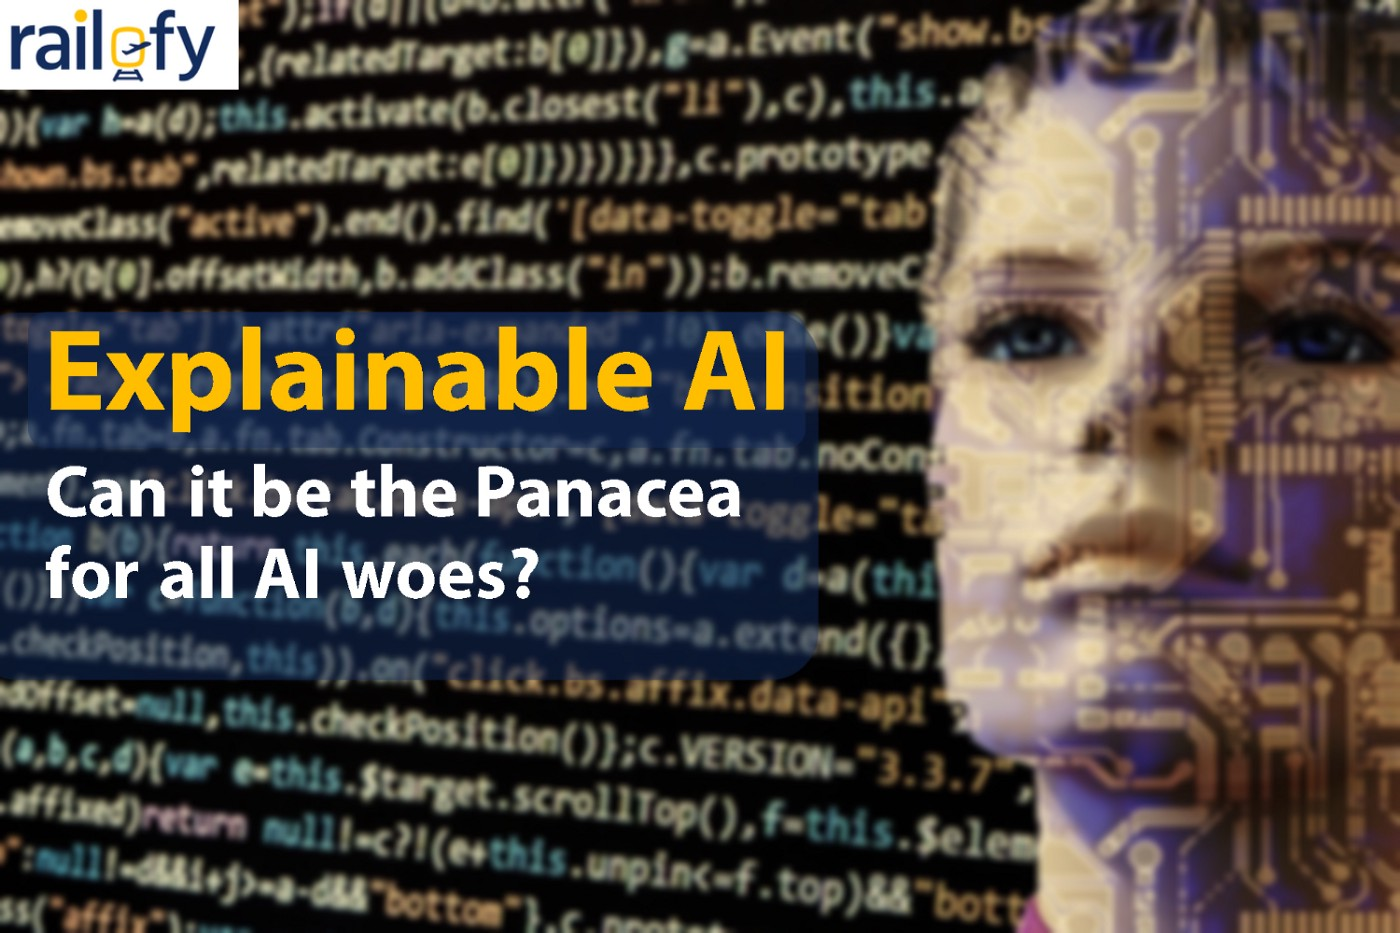 Explainable AI: The Panacea for all AI woes?